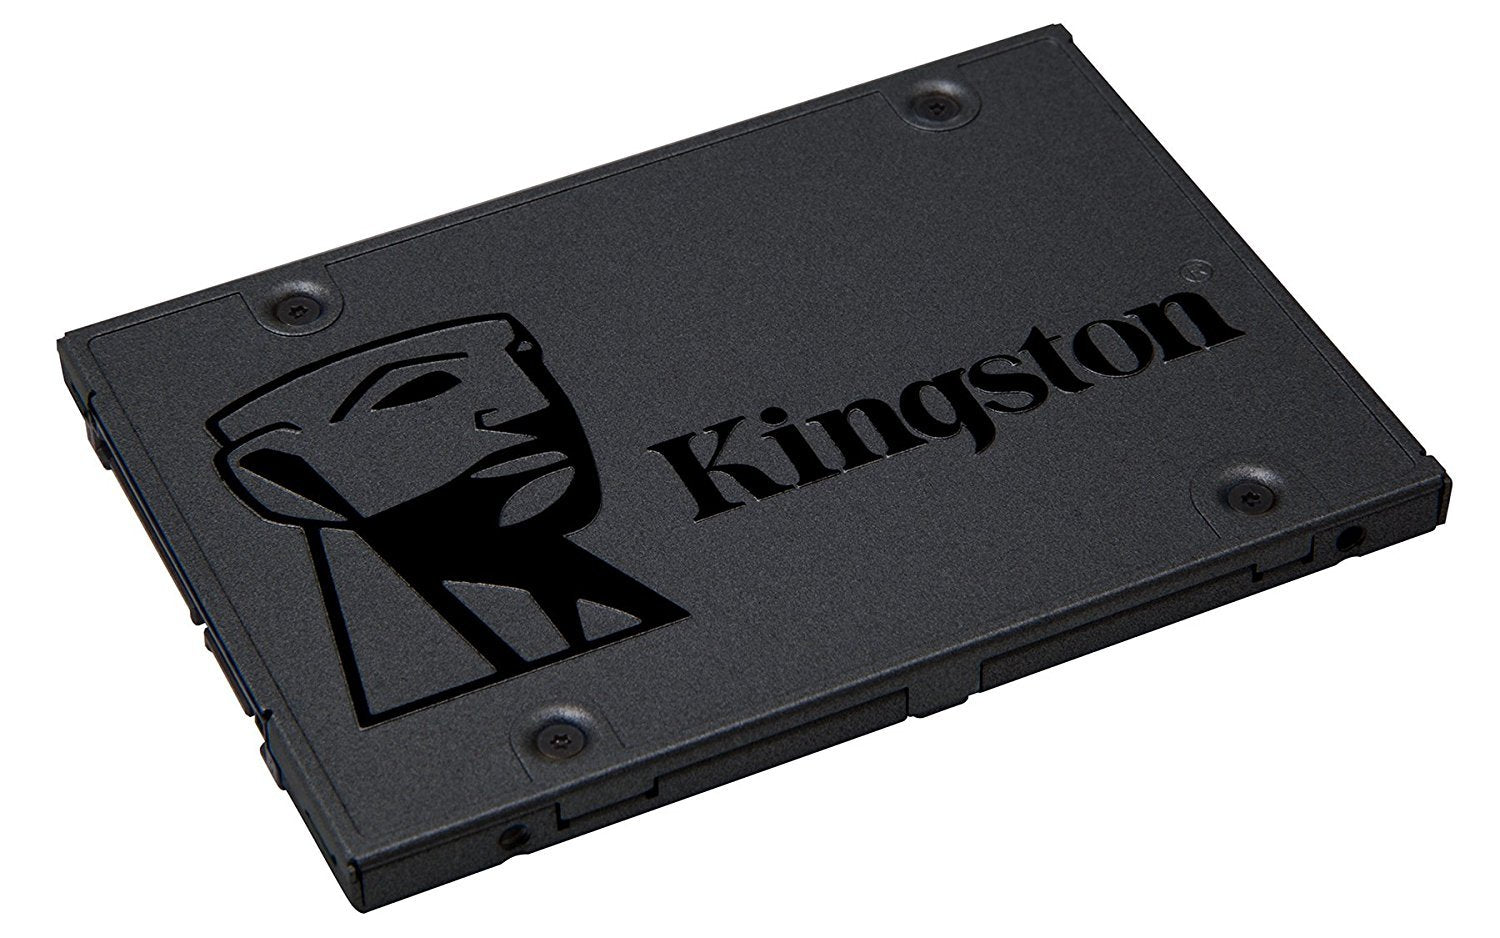 "Kingston A400 SSD SATA 3 2.5"" Solid State Drive, 120GB - 960GB -- 3 Year Kingston Warranty"